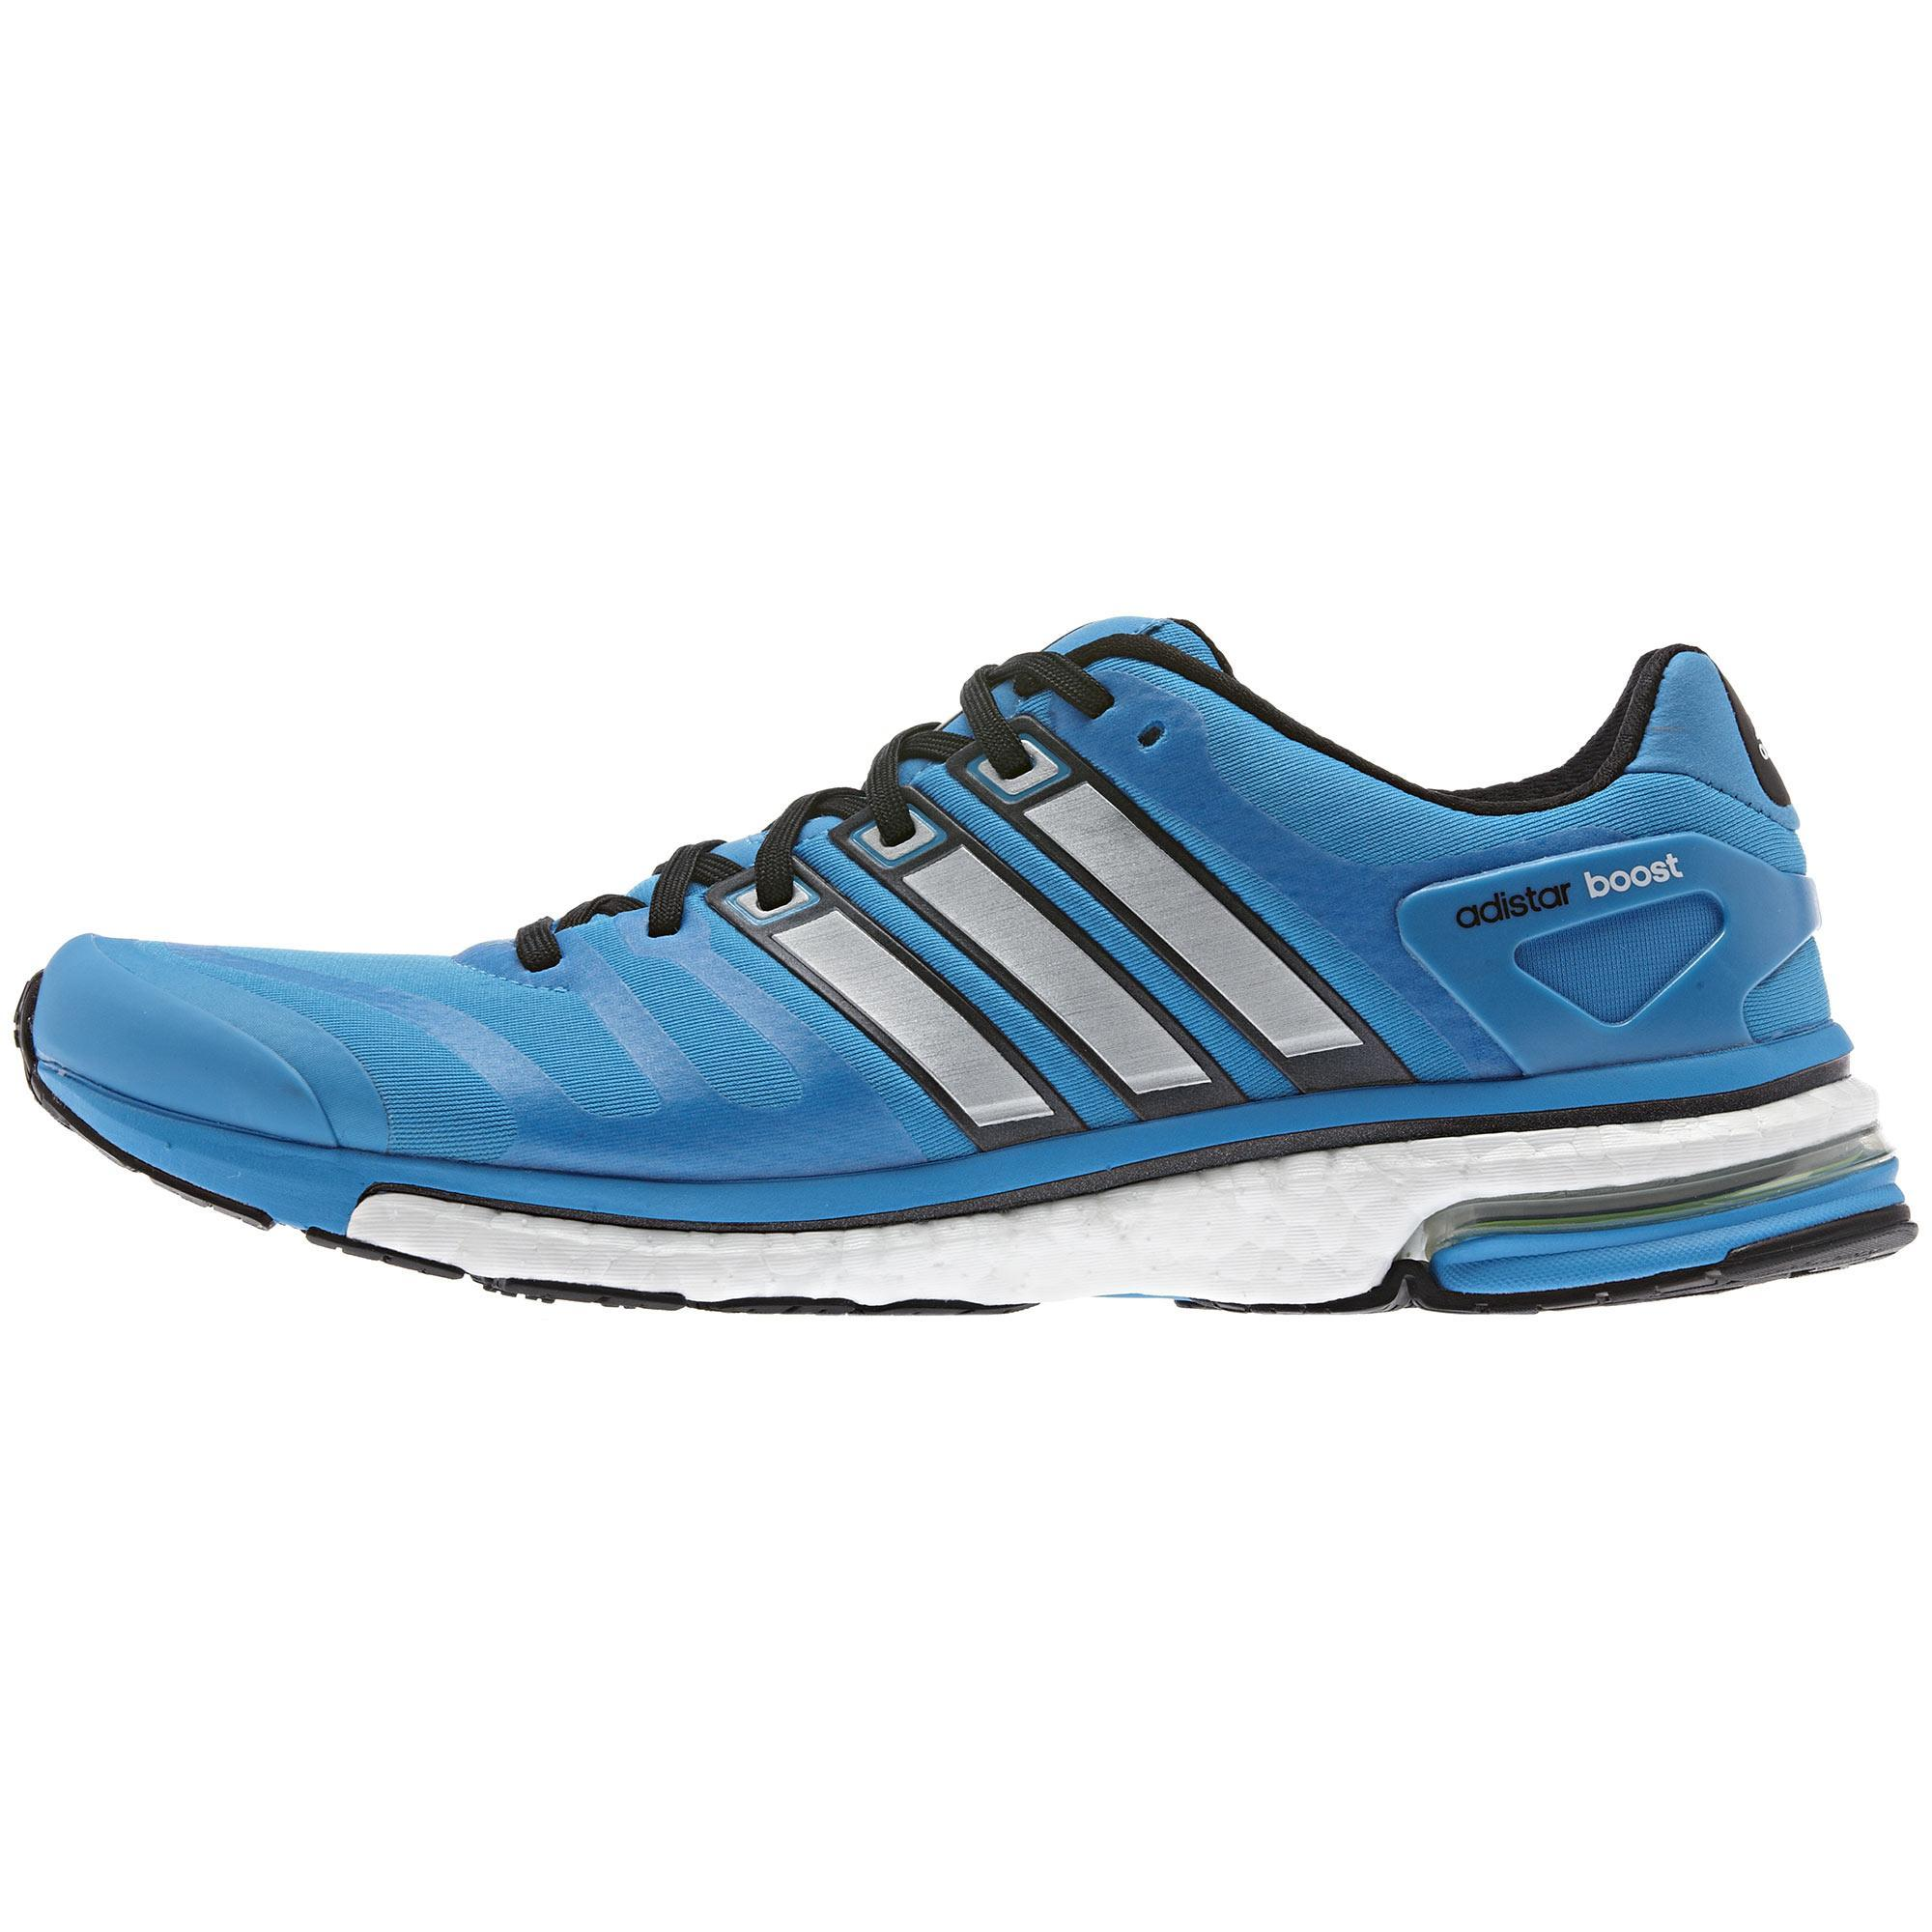 Adidas Mens Adistar Boost Running Shoes - Blue